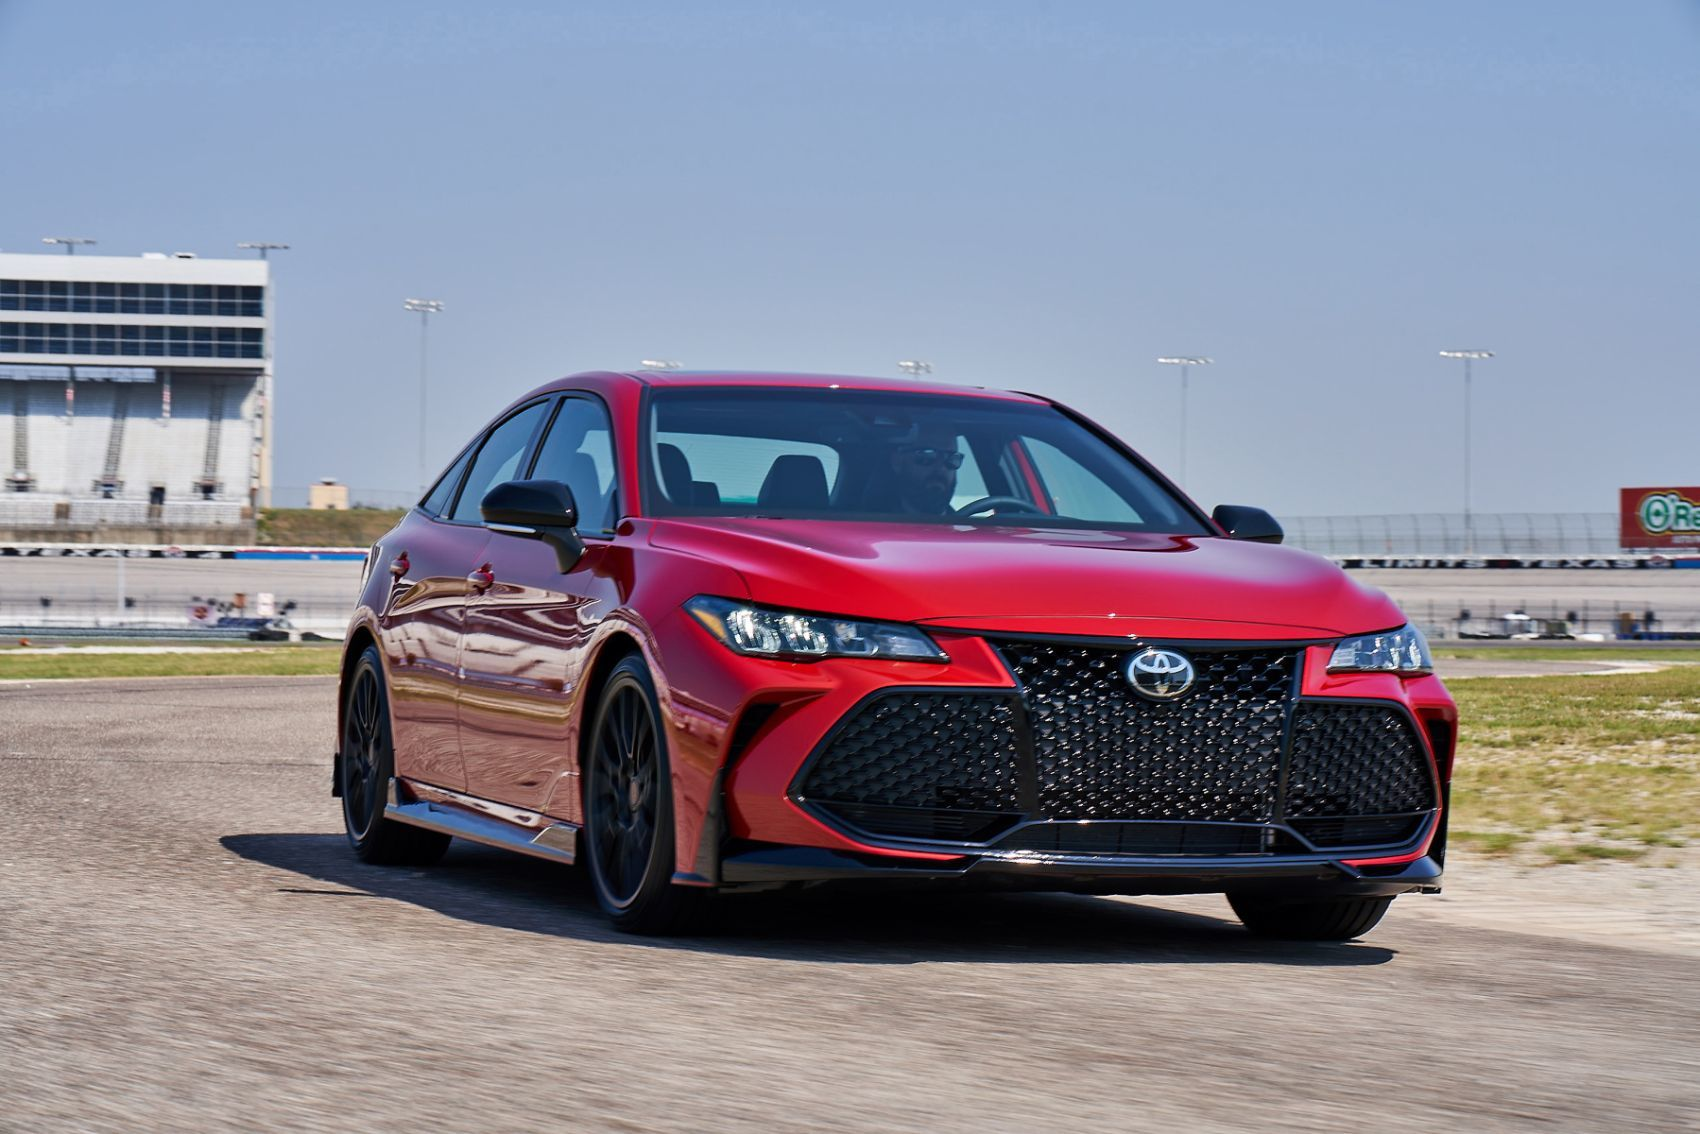 2020 Toyota Avalon TRD Review: More Playful Than Your Average Daily Driver